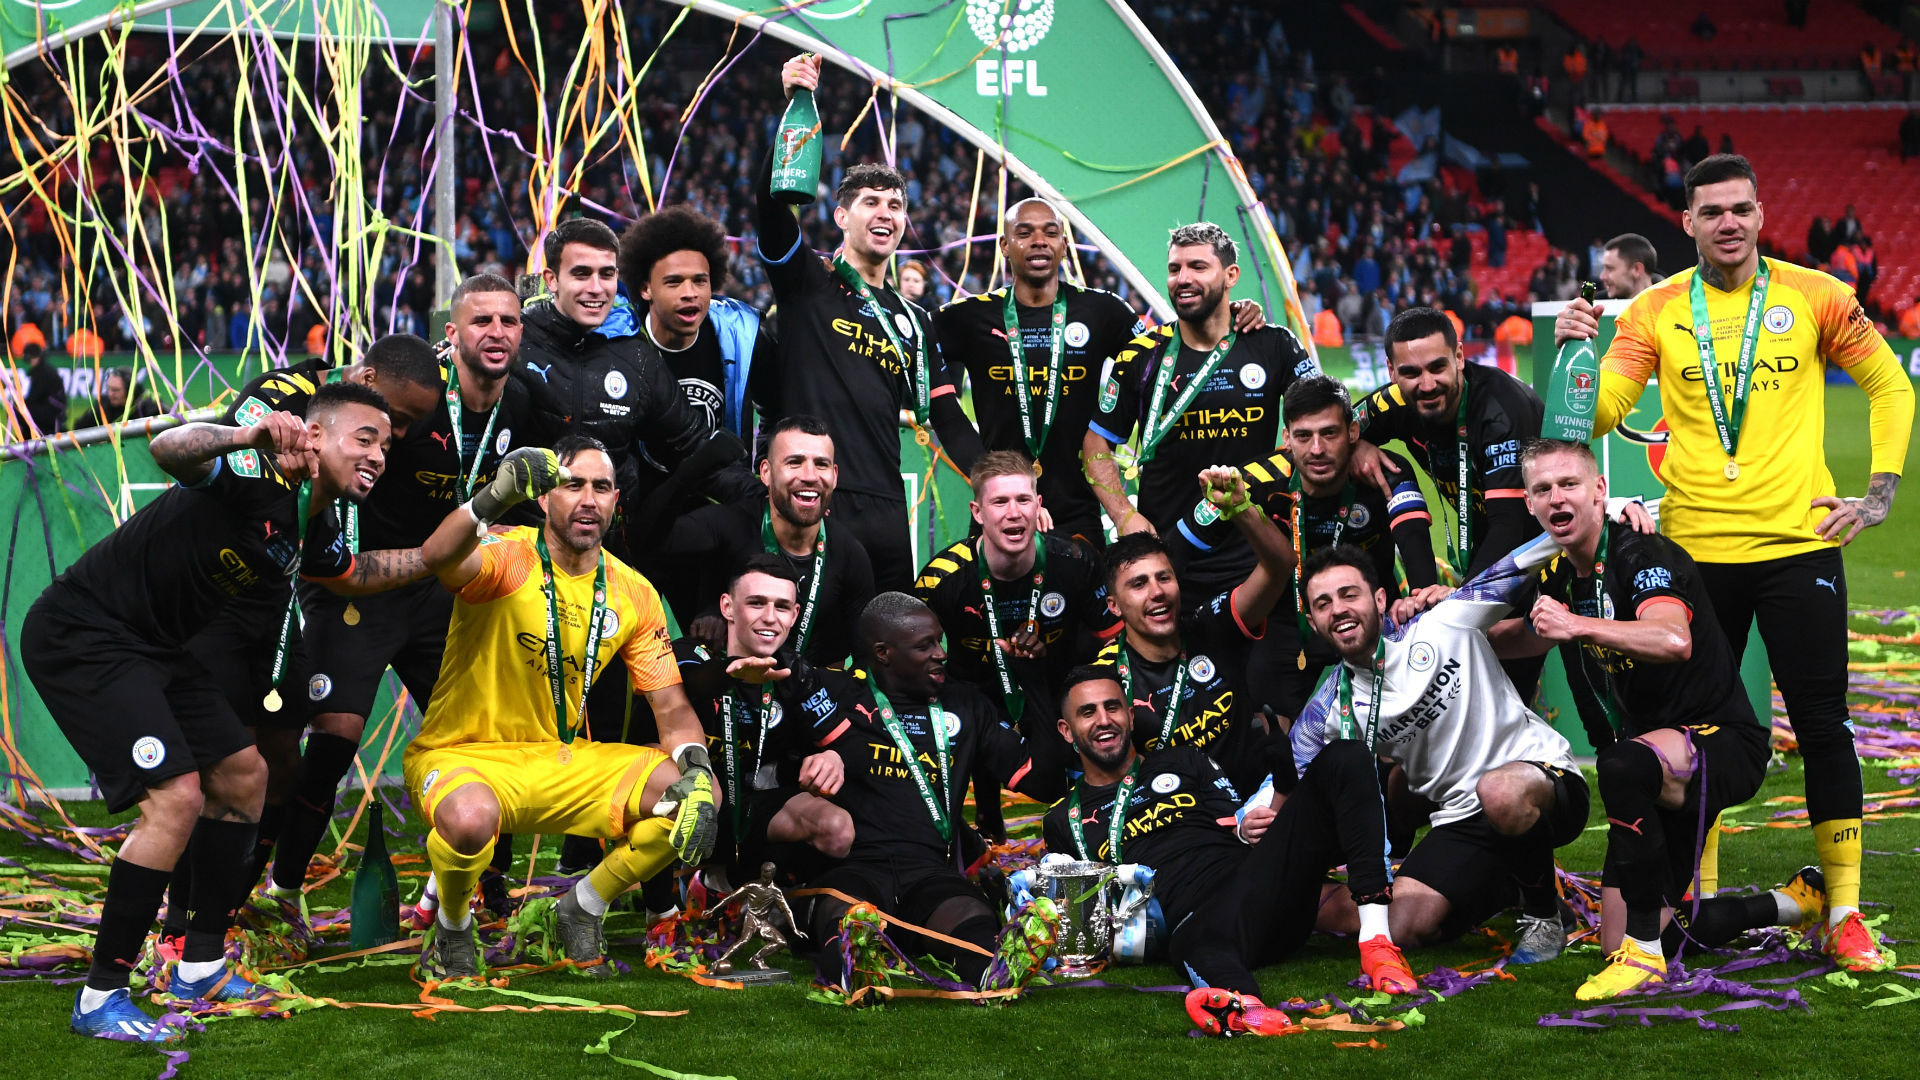 EFL Cup final moved from February to April